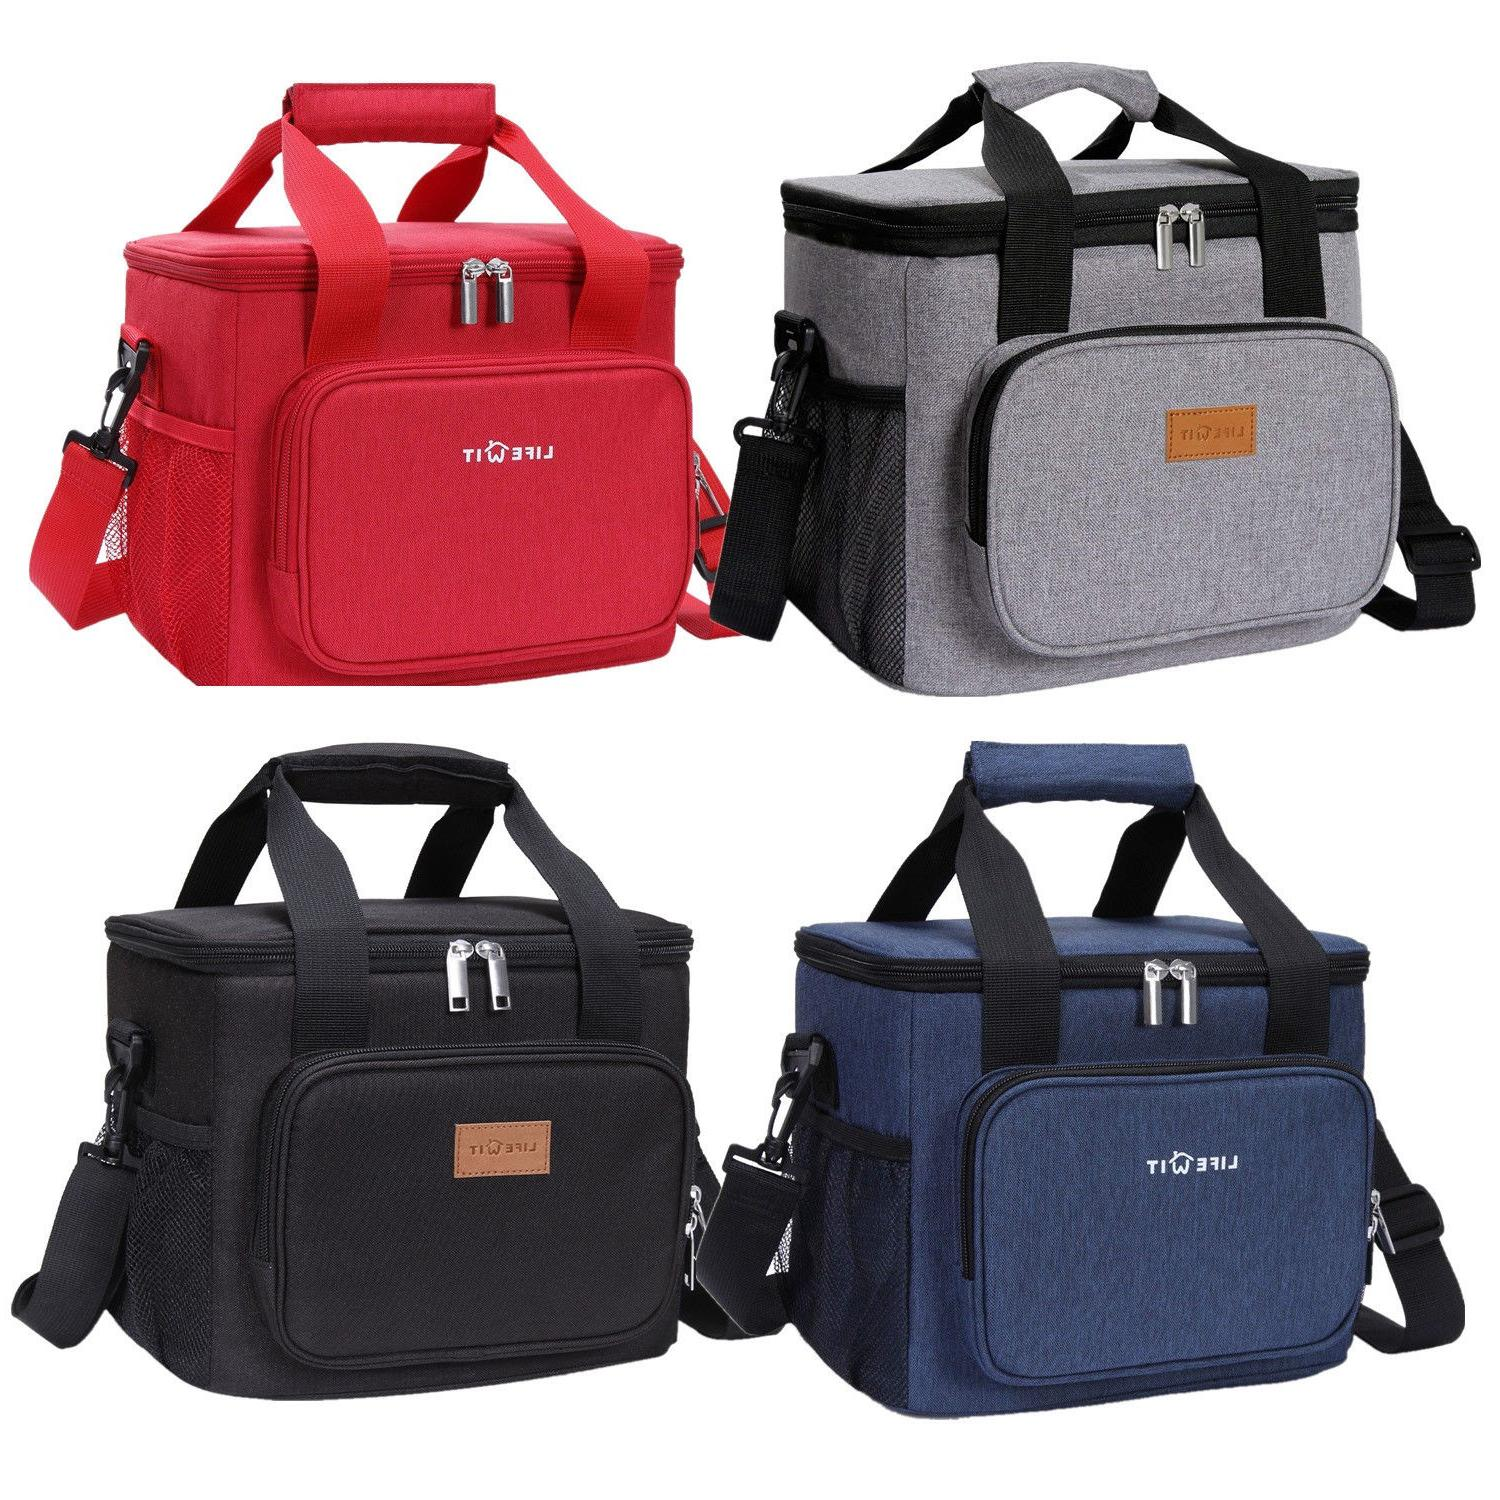 15l insulated lunch bag box cooler bag